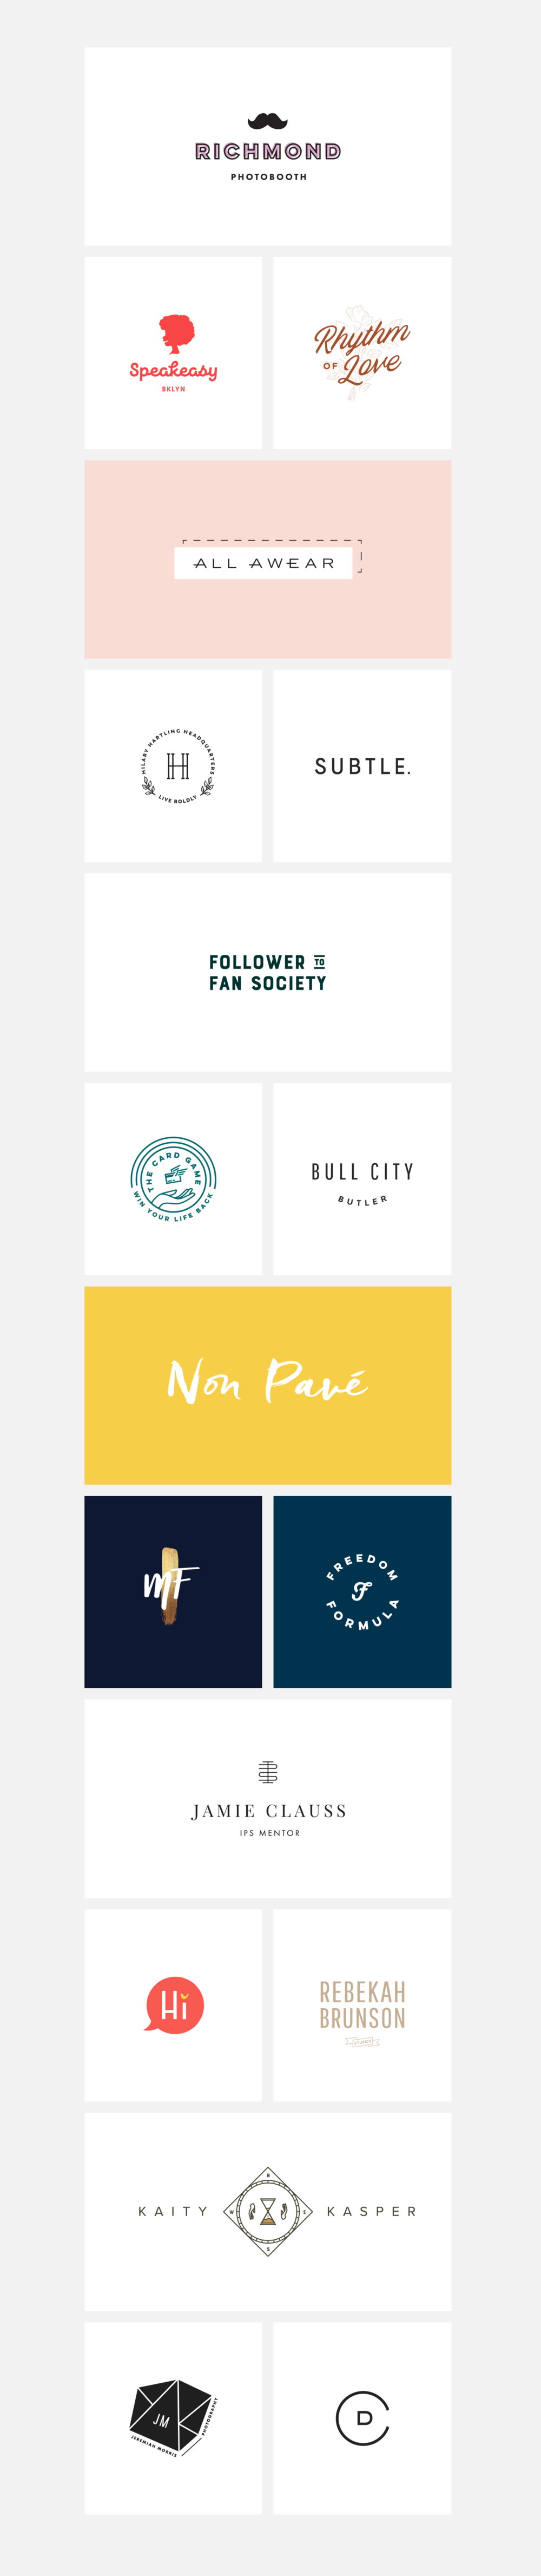 Branding by The Routine Creative - theroutinecreative.com